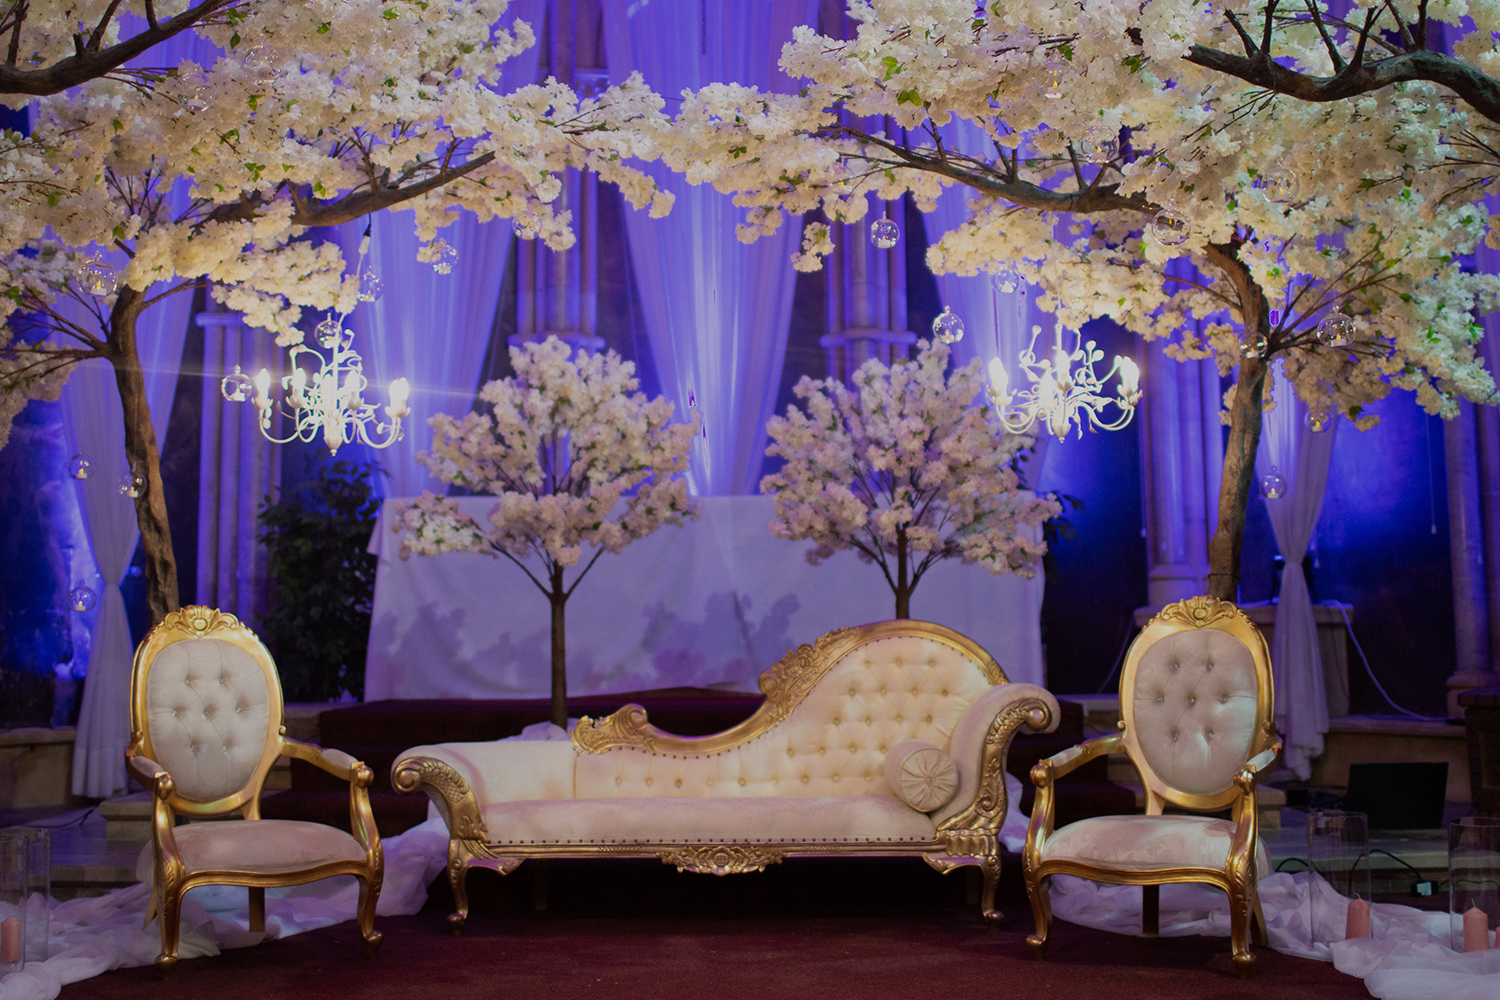 More Weddings decor hire with white blossom trees